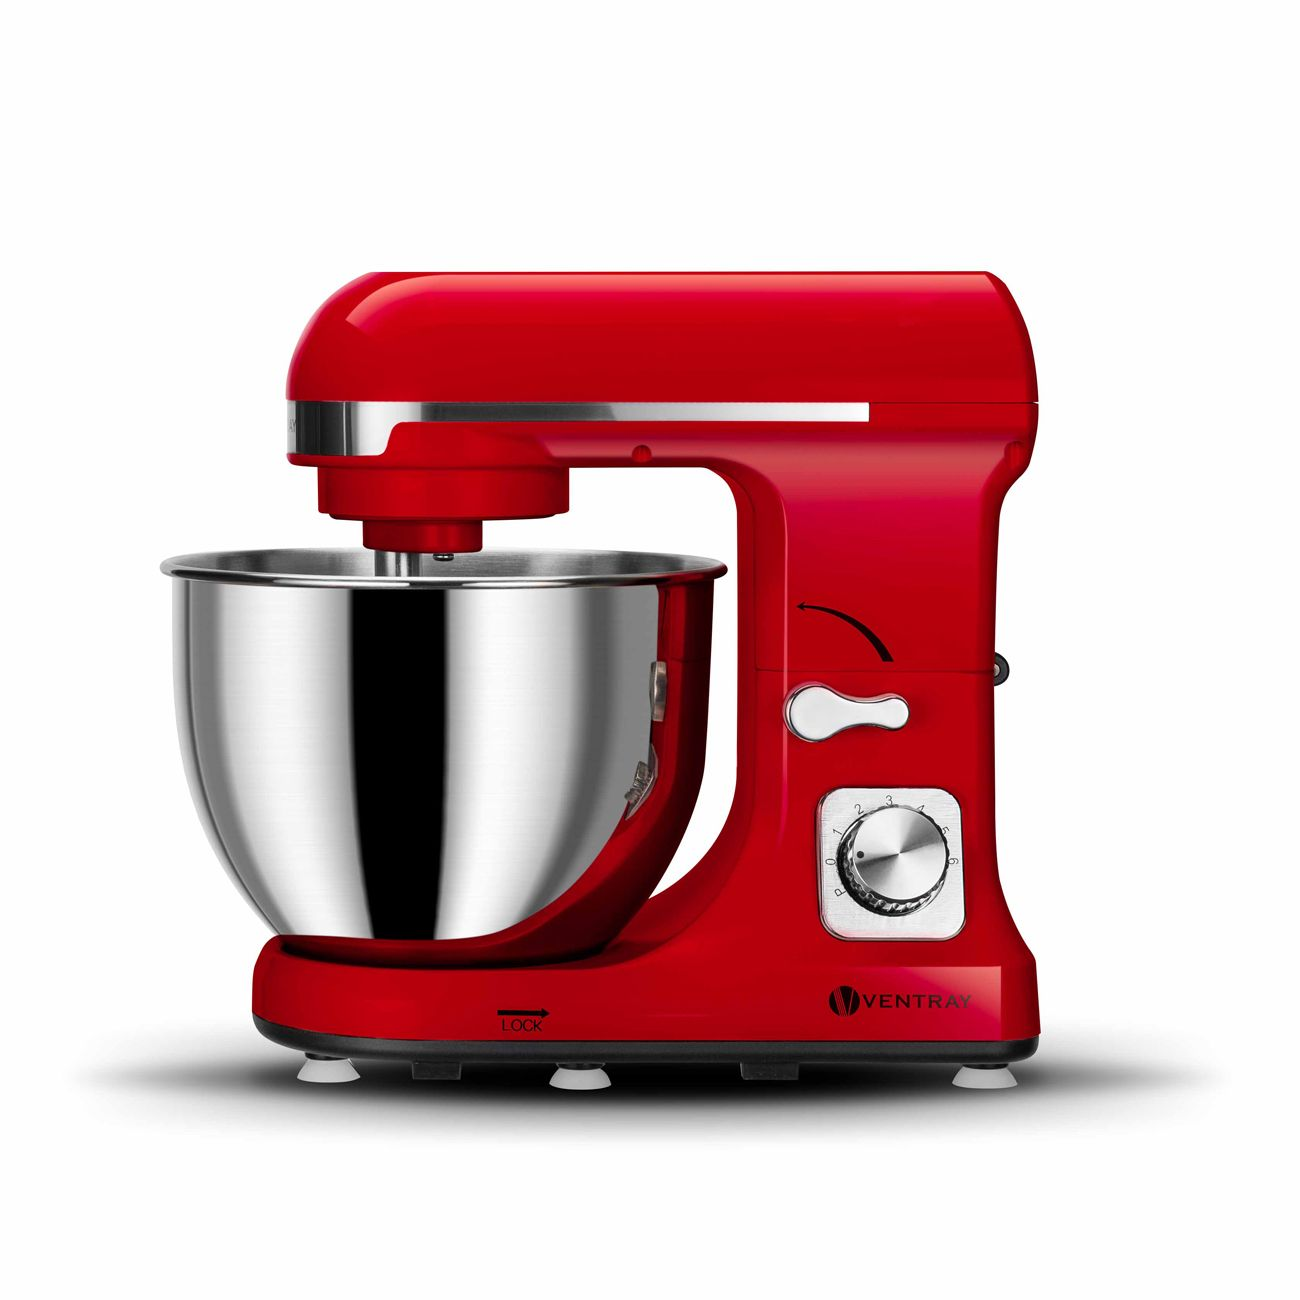 New Ventray Mk37 Stand Mixer Best Stand Mixer Mixer Stainless Steel Bowl